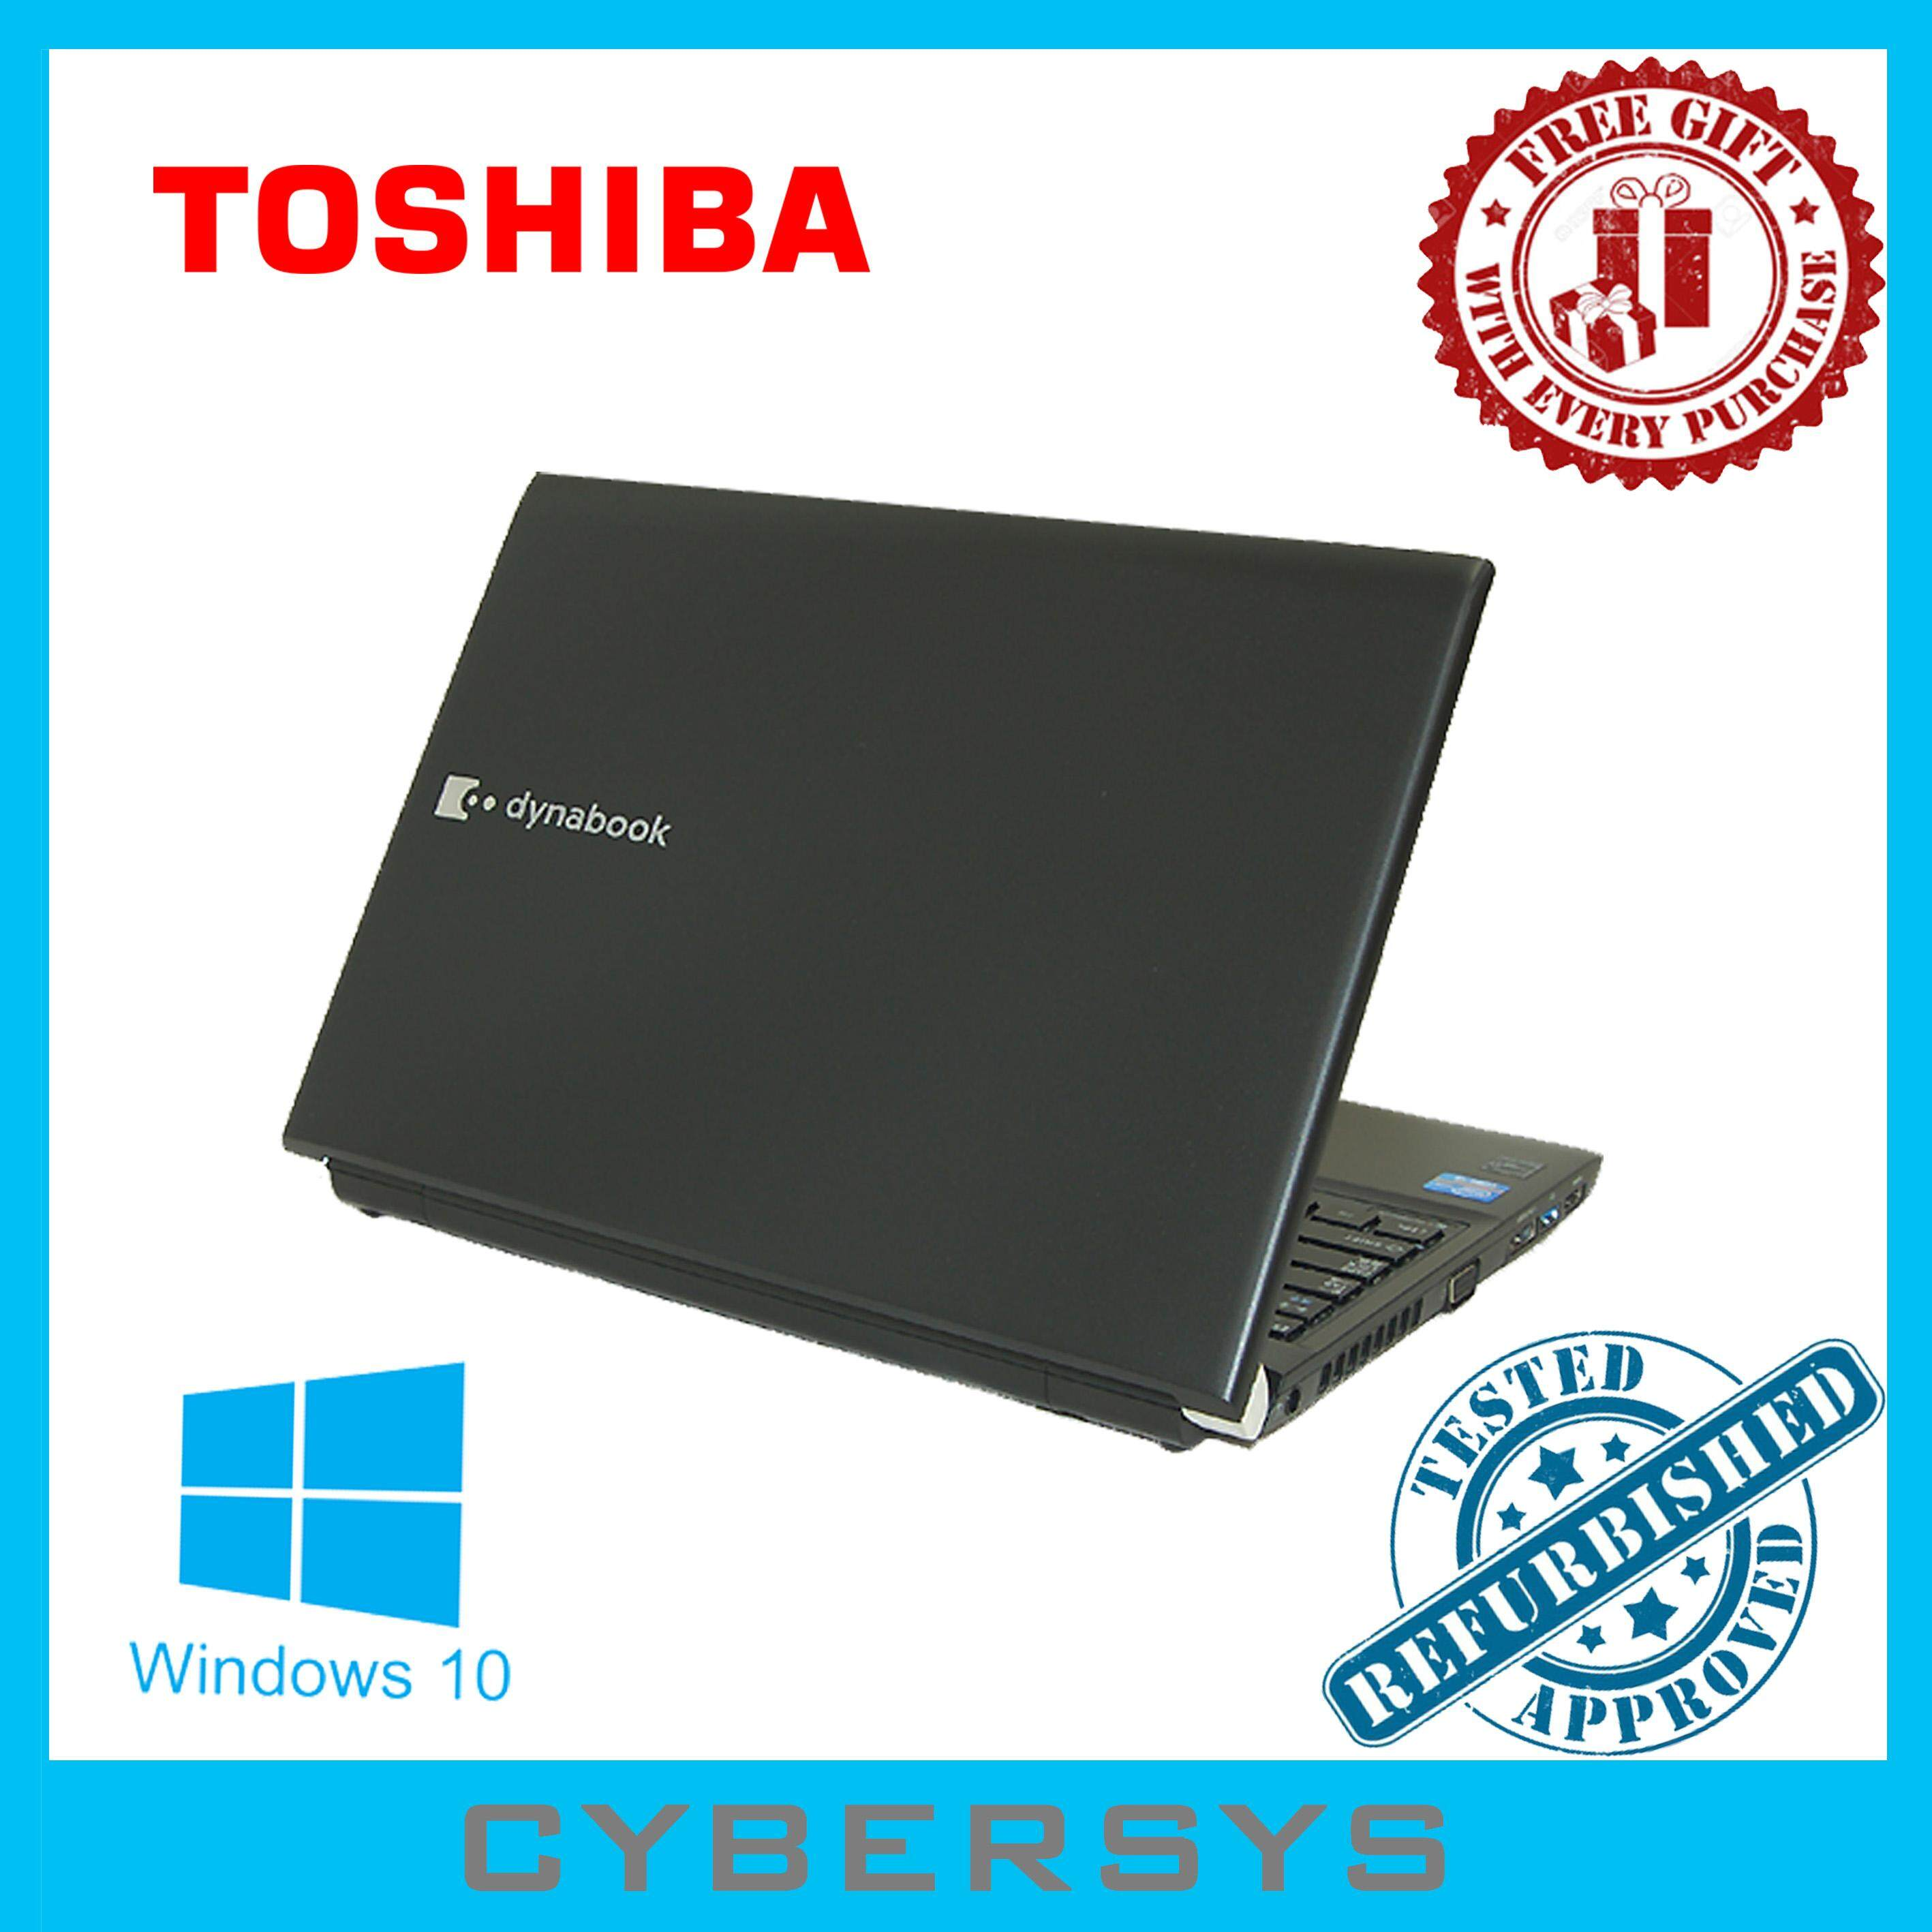 Toshiba Slim Dynabook Intel Core i5 8GB 240GB SSD Laptop Notebook (Refurbished) Malaysia